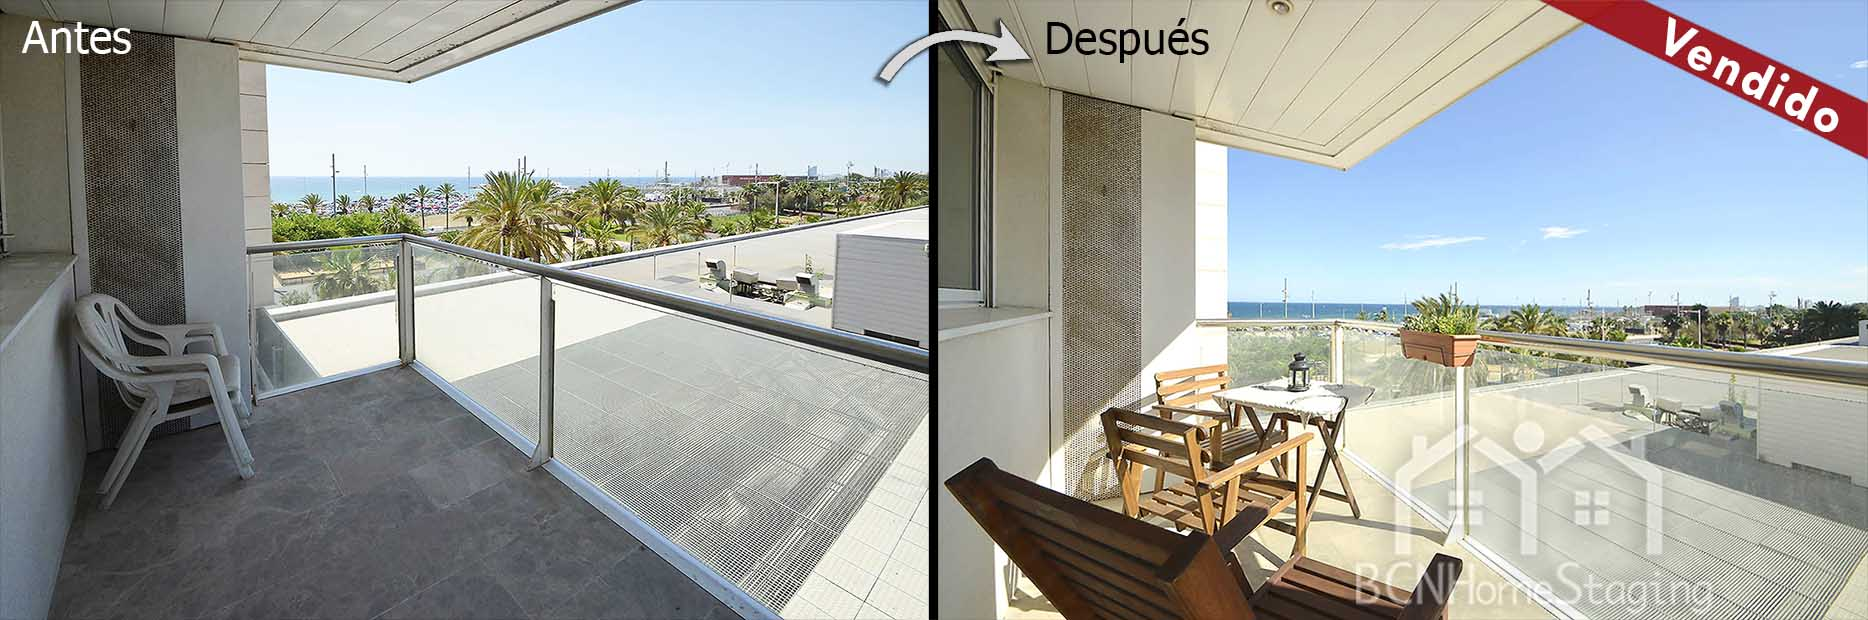 home-staging-barcelona-exterior-terraza-antes-despues